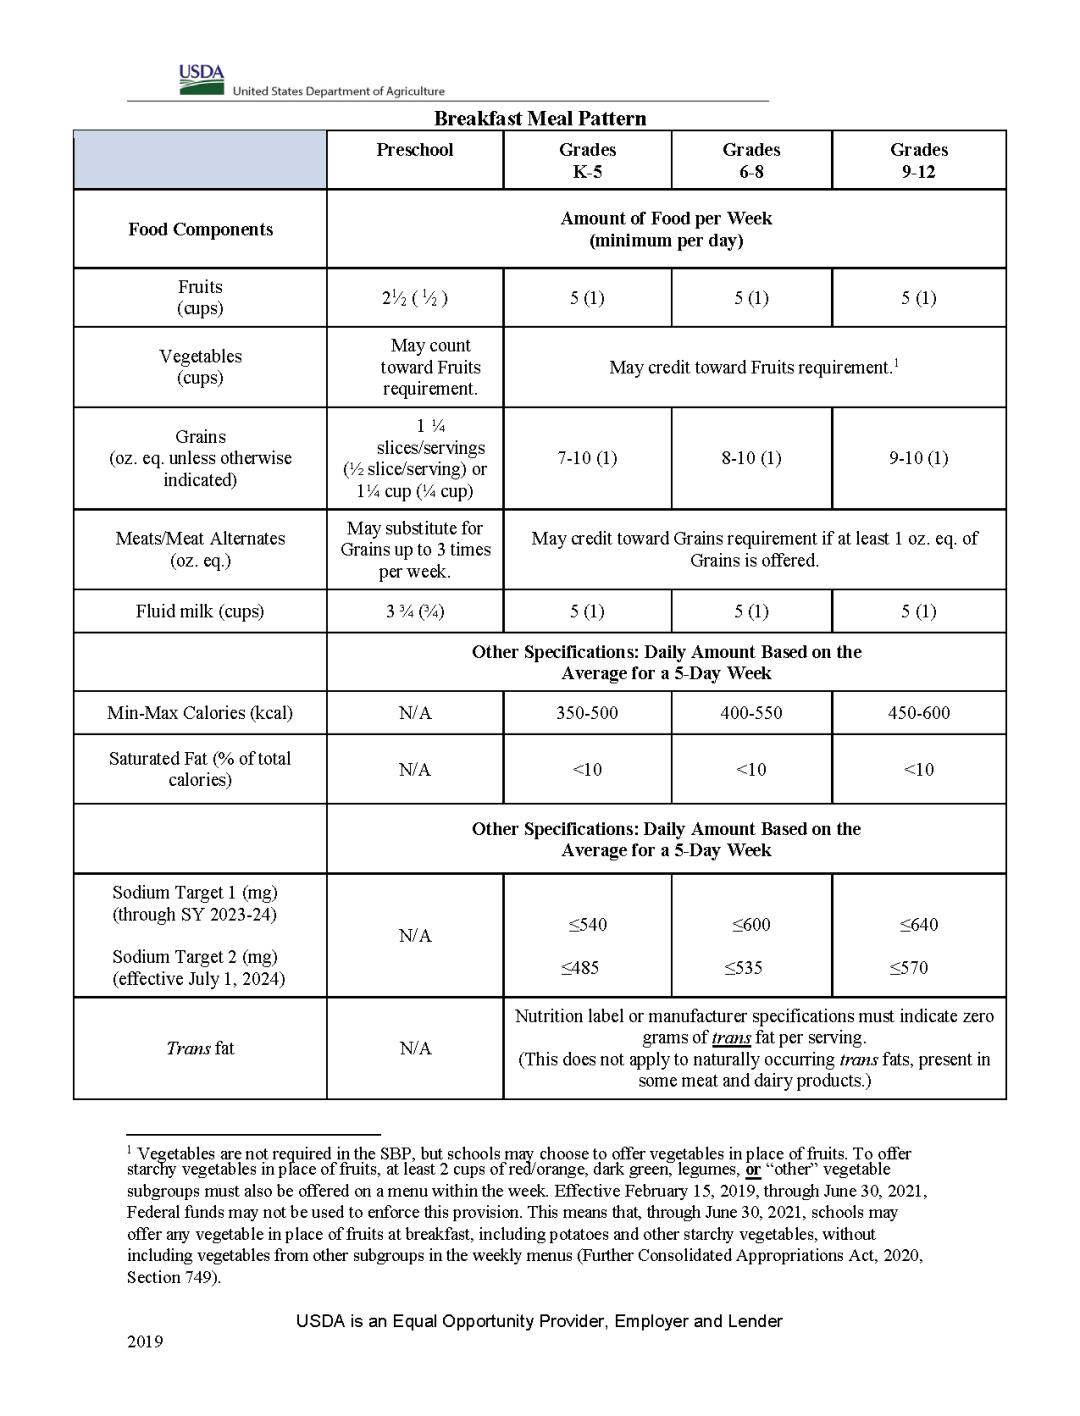 USDA Chart Showing the Breakfast Meal Pattern Requirements